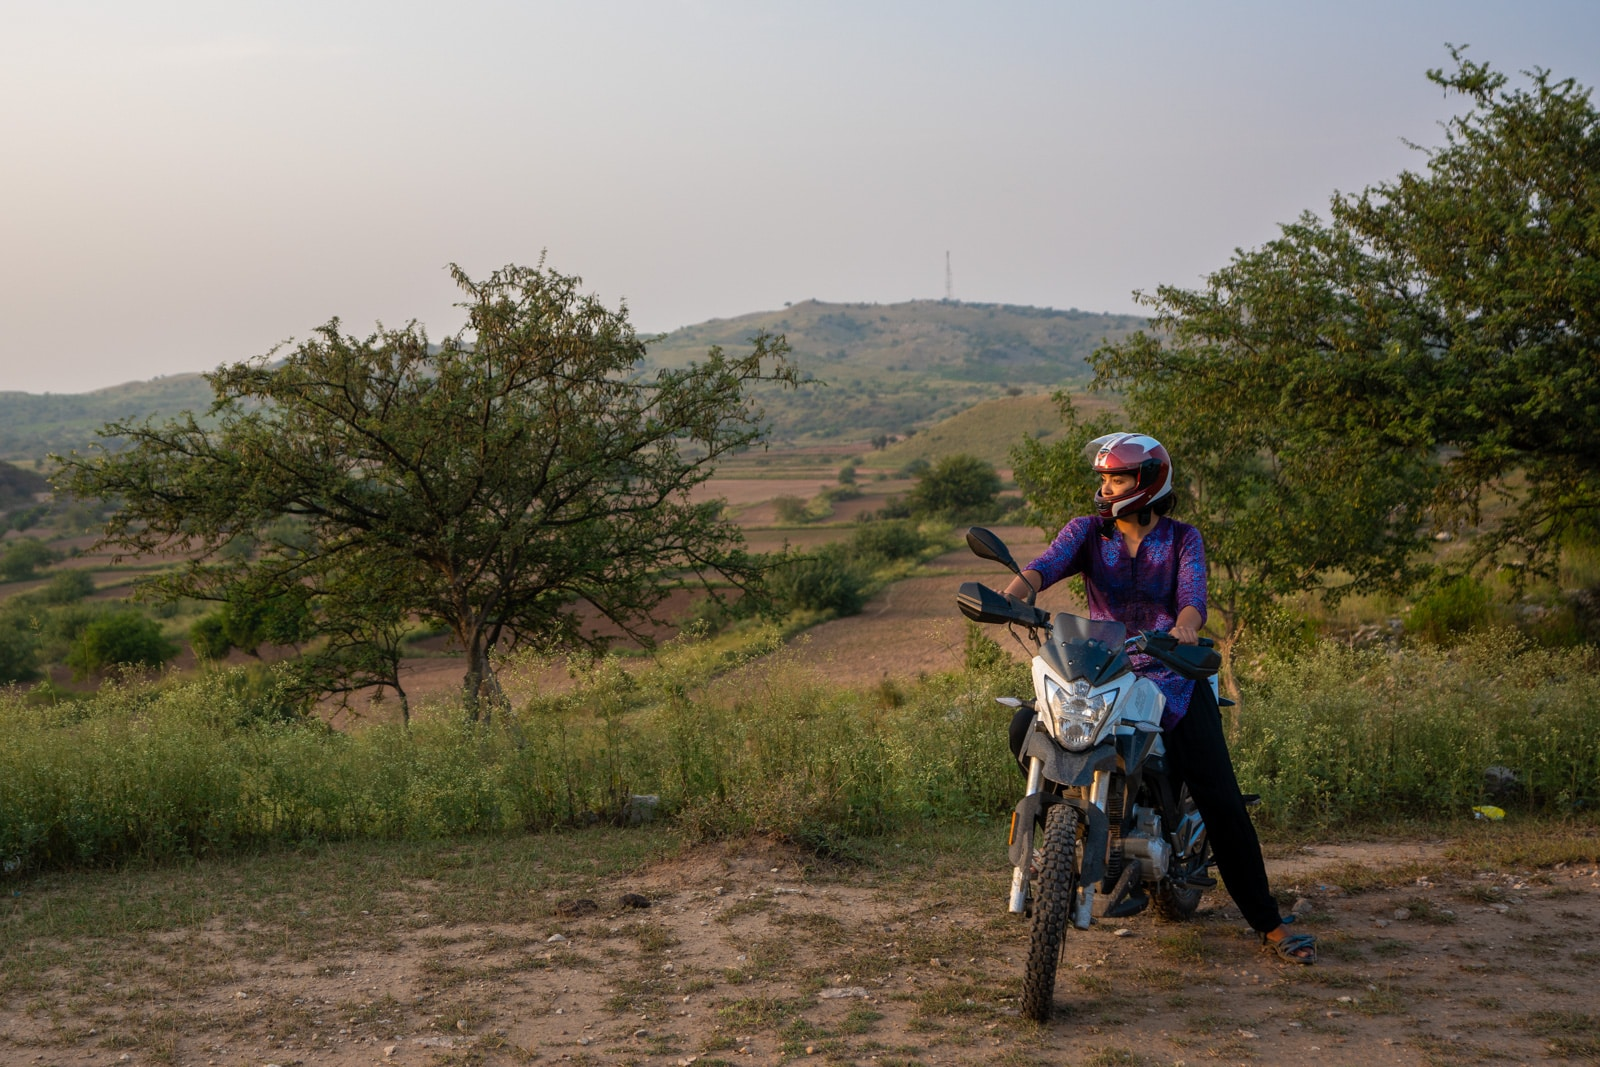 Learning to motorbike as a woman in Pakistan - Alex on a motorbike during sunset in Punjab - Lost With Purpose travel blog